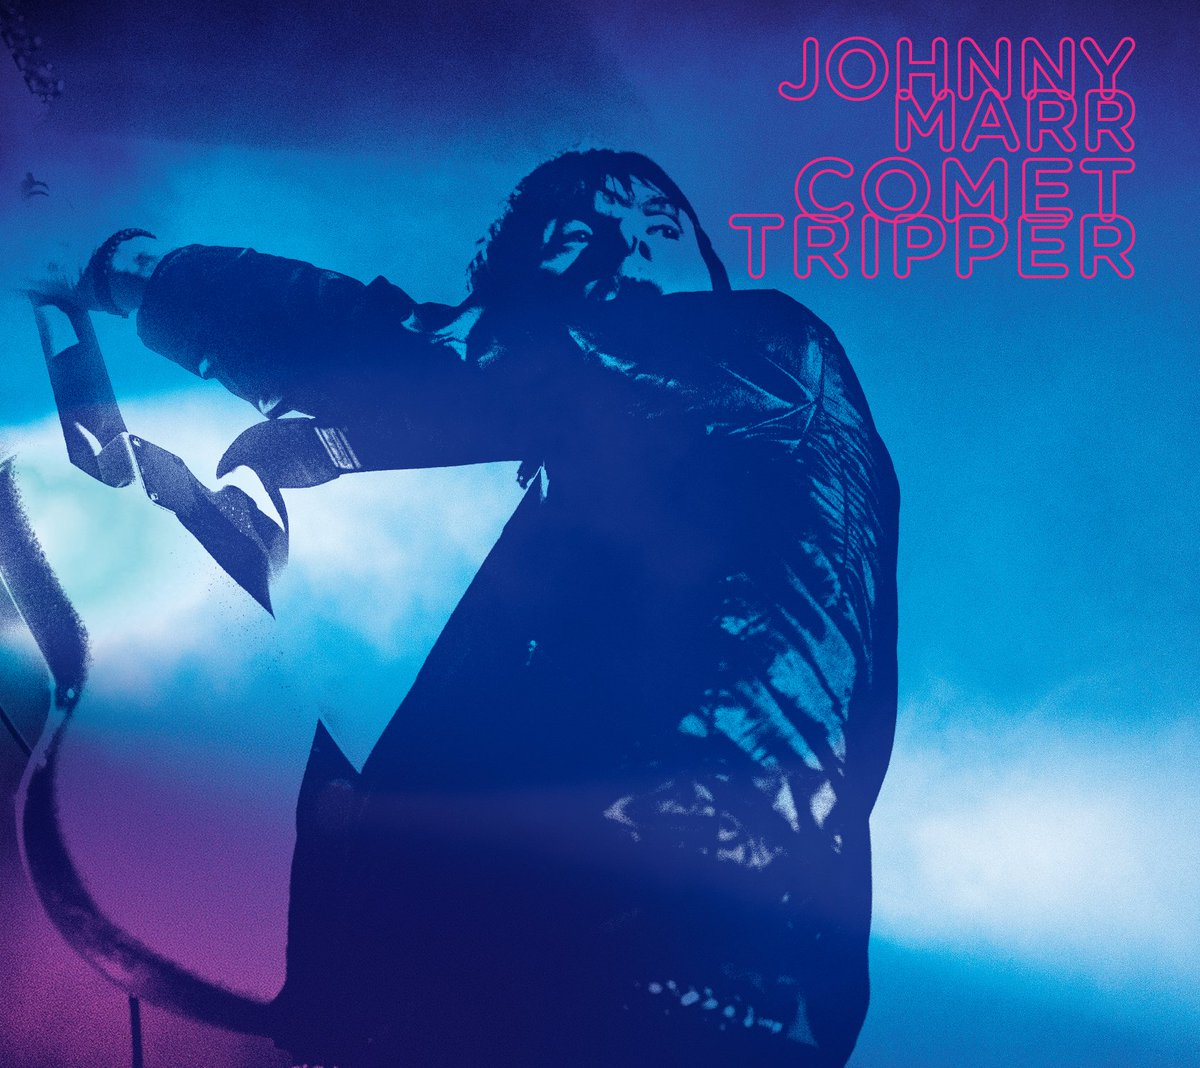 Johnny Marr - Comet Tripper - Live At The Roundhouse - 2018  Download MP3 or WAV